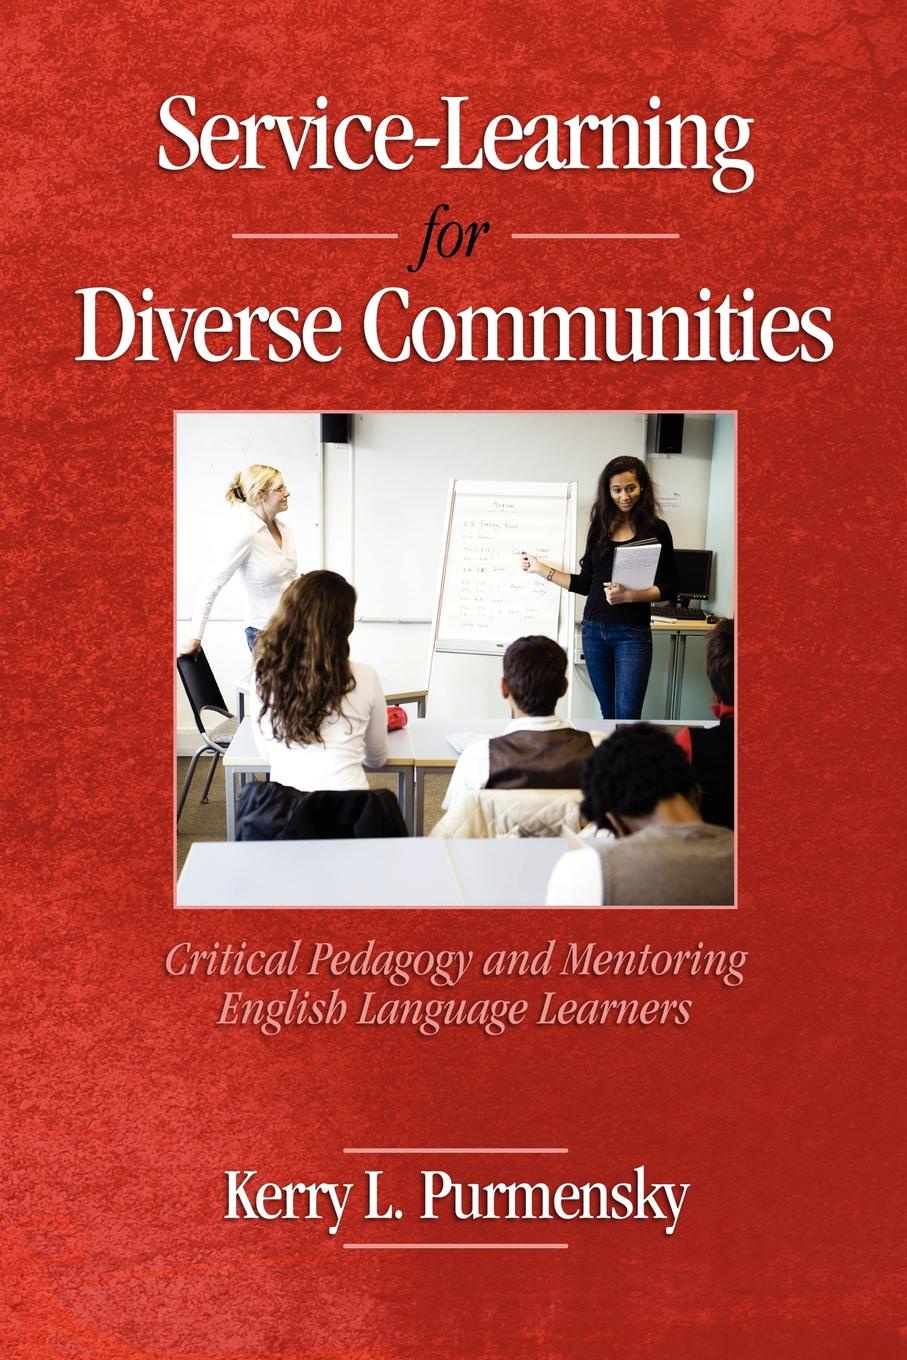 Kerry L Purmensky Service-Learning for Diverse Communities. Critical Pedagogy and Mentoring English Language Learners (PB) suzanne morse w smart communities how citizens and local leaders can use strategic thinking to build a brighter future